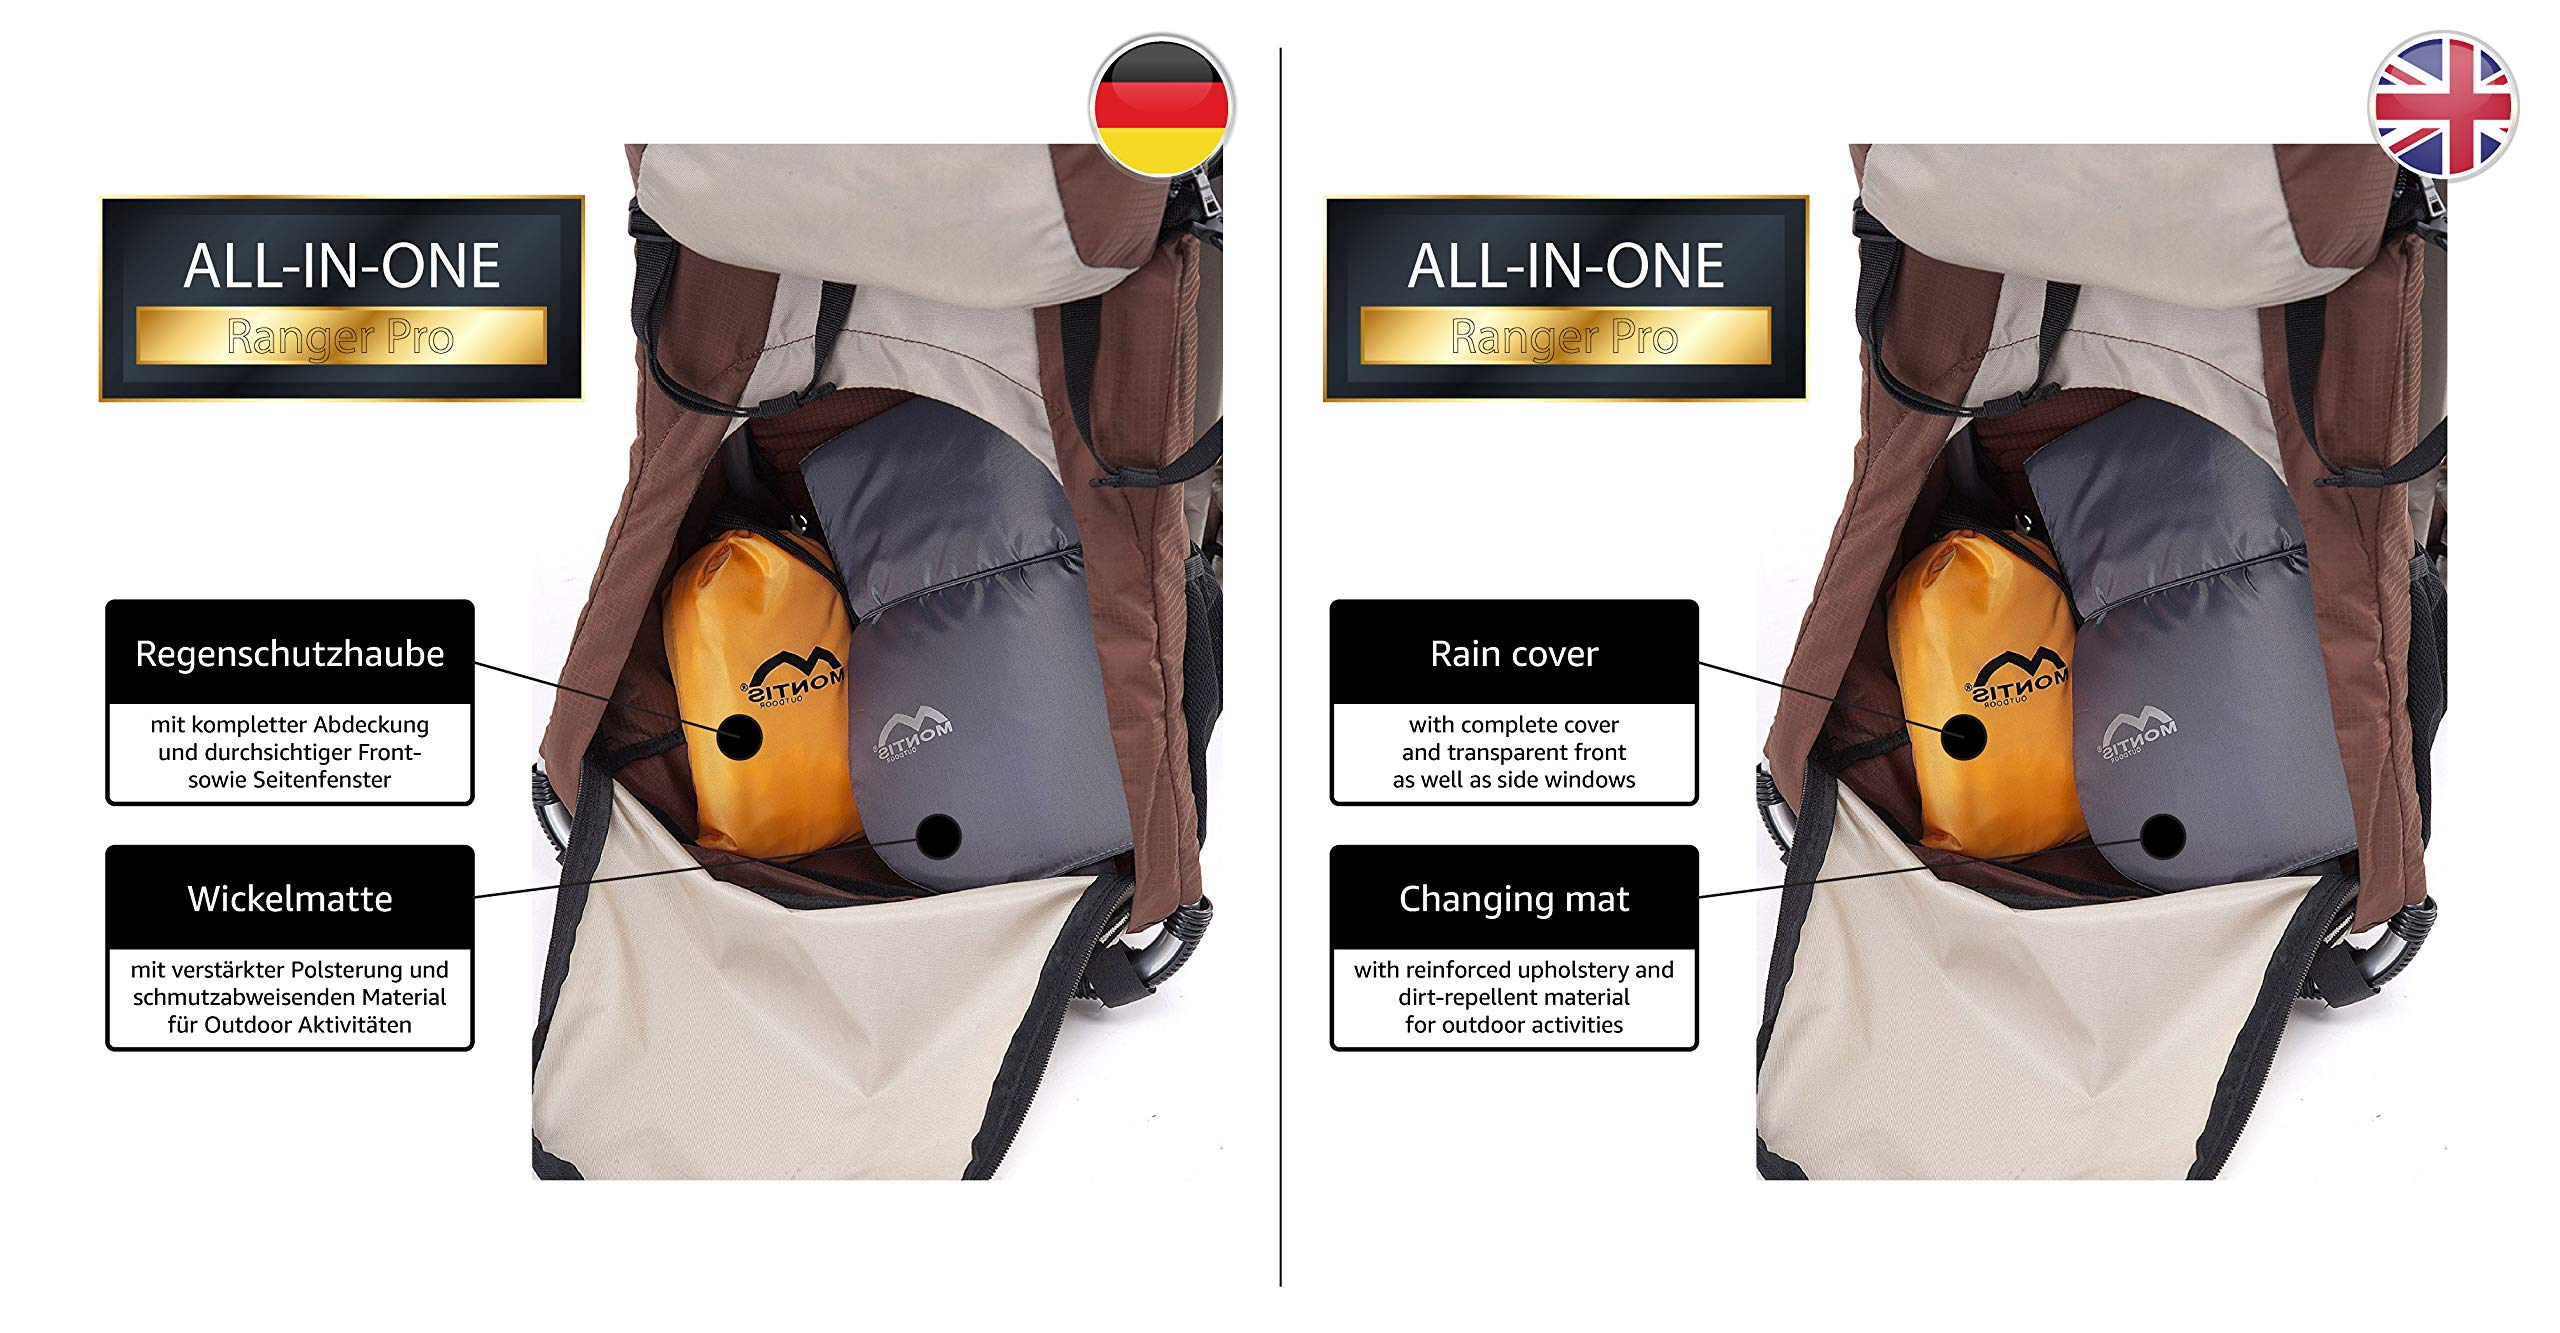 MONTIS RANGER PRO - Premium Backpack/Child Carrier - Holds up to 25kg M MONTIS OUTDOOR 89cm high, 37cm wide | Carries loads up to 25kg, seat bag 30L | Approx. 2.3kg (without extras) Easy-clean outer material | Fully-adjustable, padded 5-point child harness Super soft plush lining, raised wind guard, can be loaded from both sides | Fully-adjustable carry support system, additional ergonomic options for women | Comfortable waist belt for extended wearing with side pockets 7